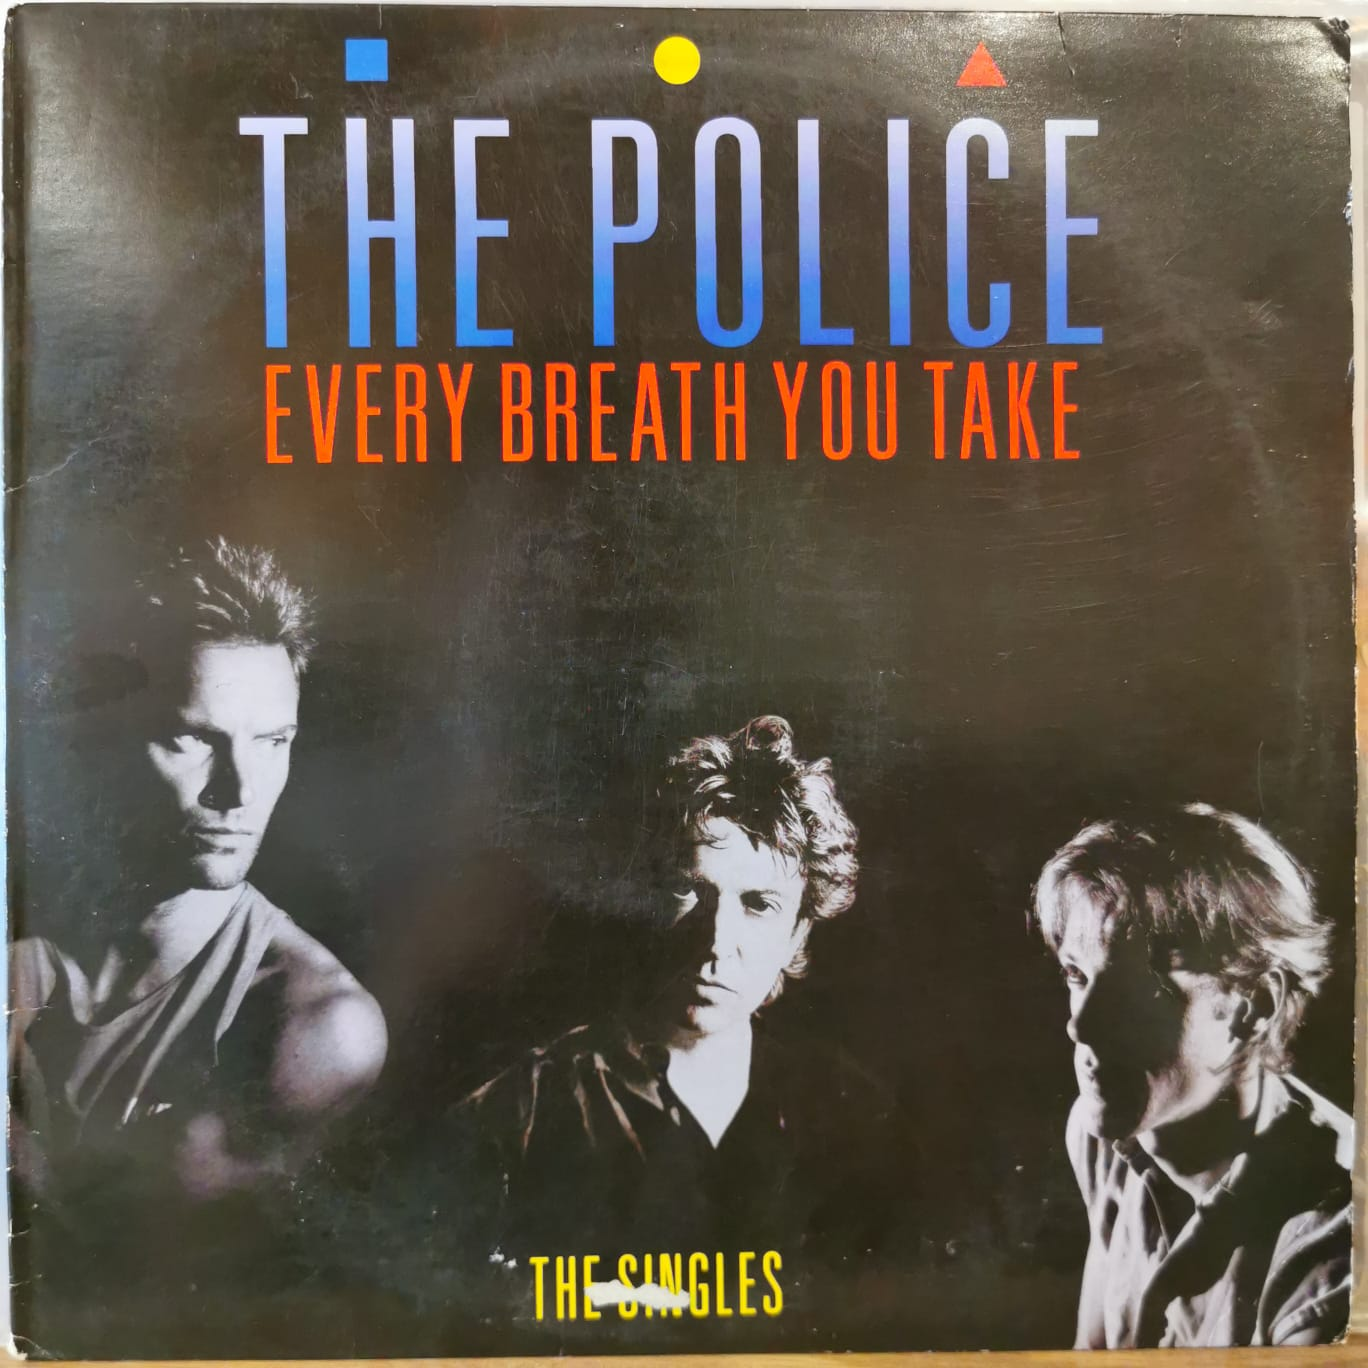 THE POLICE - EVERY BREATH YOU TAKE - (The Singles) Vinyl, LP, Compilation, Remastered, Stereo